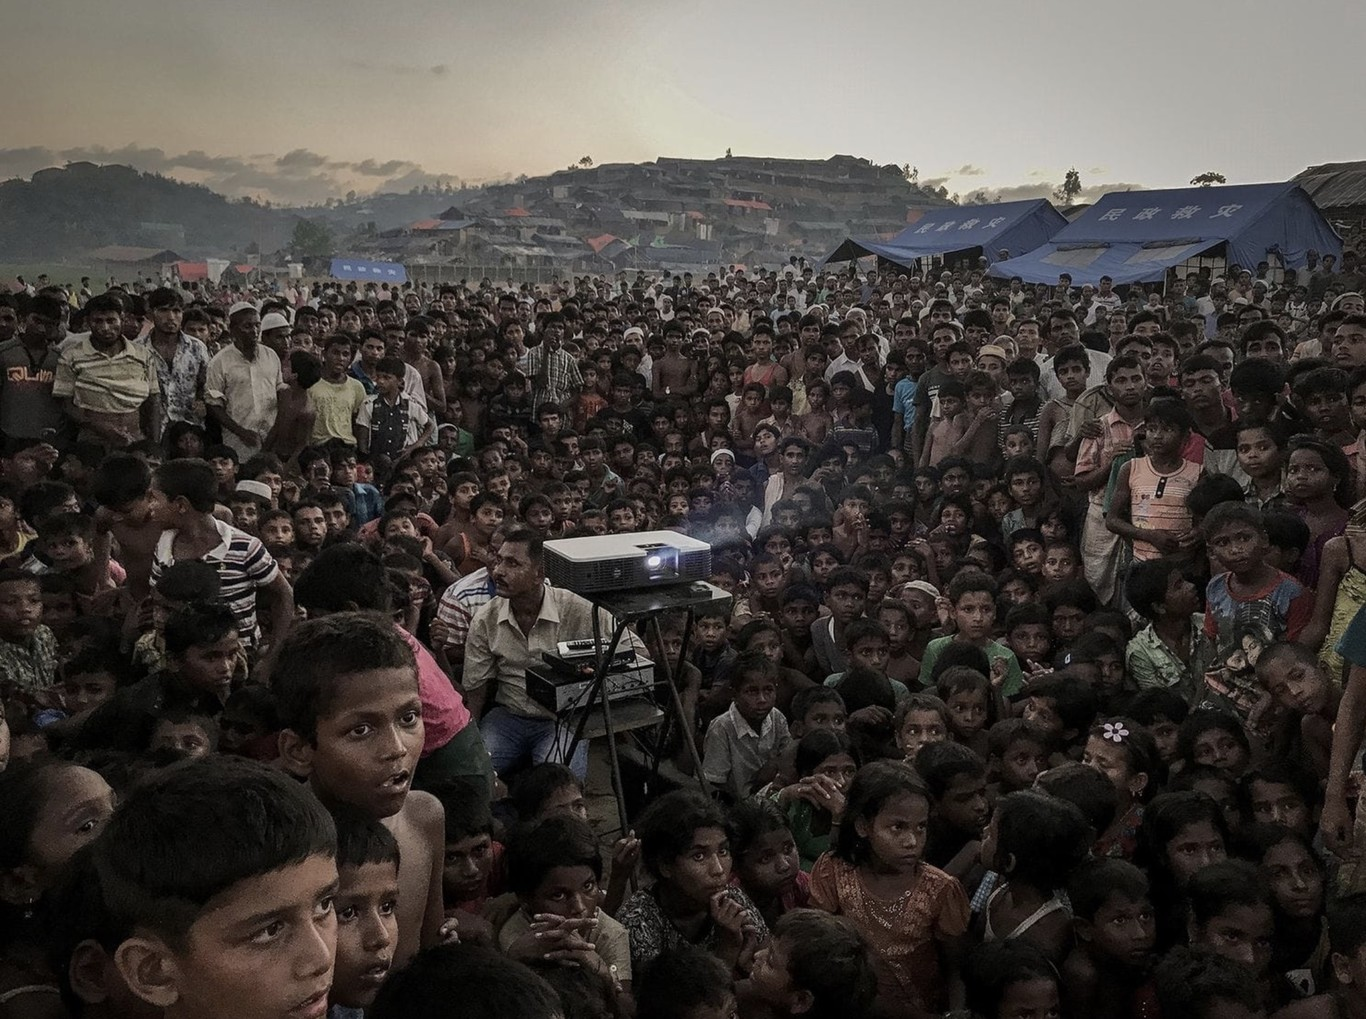 photographer-jashim-salam-grand-prize-winner